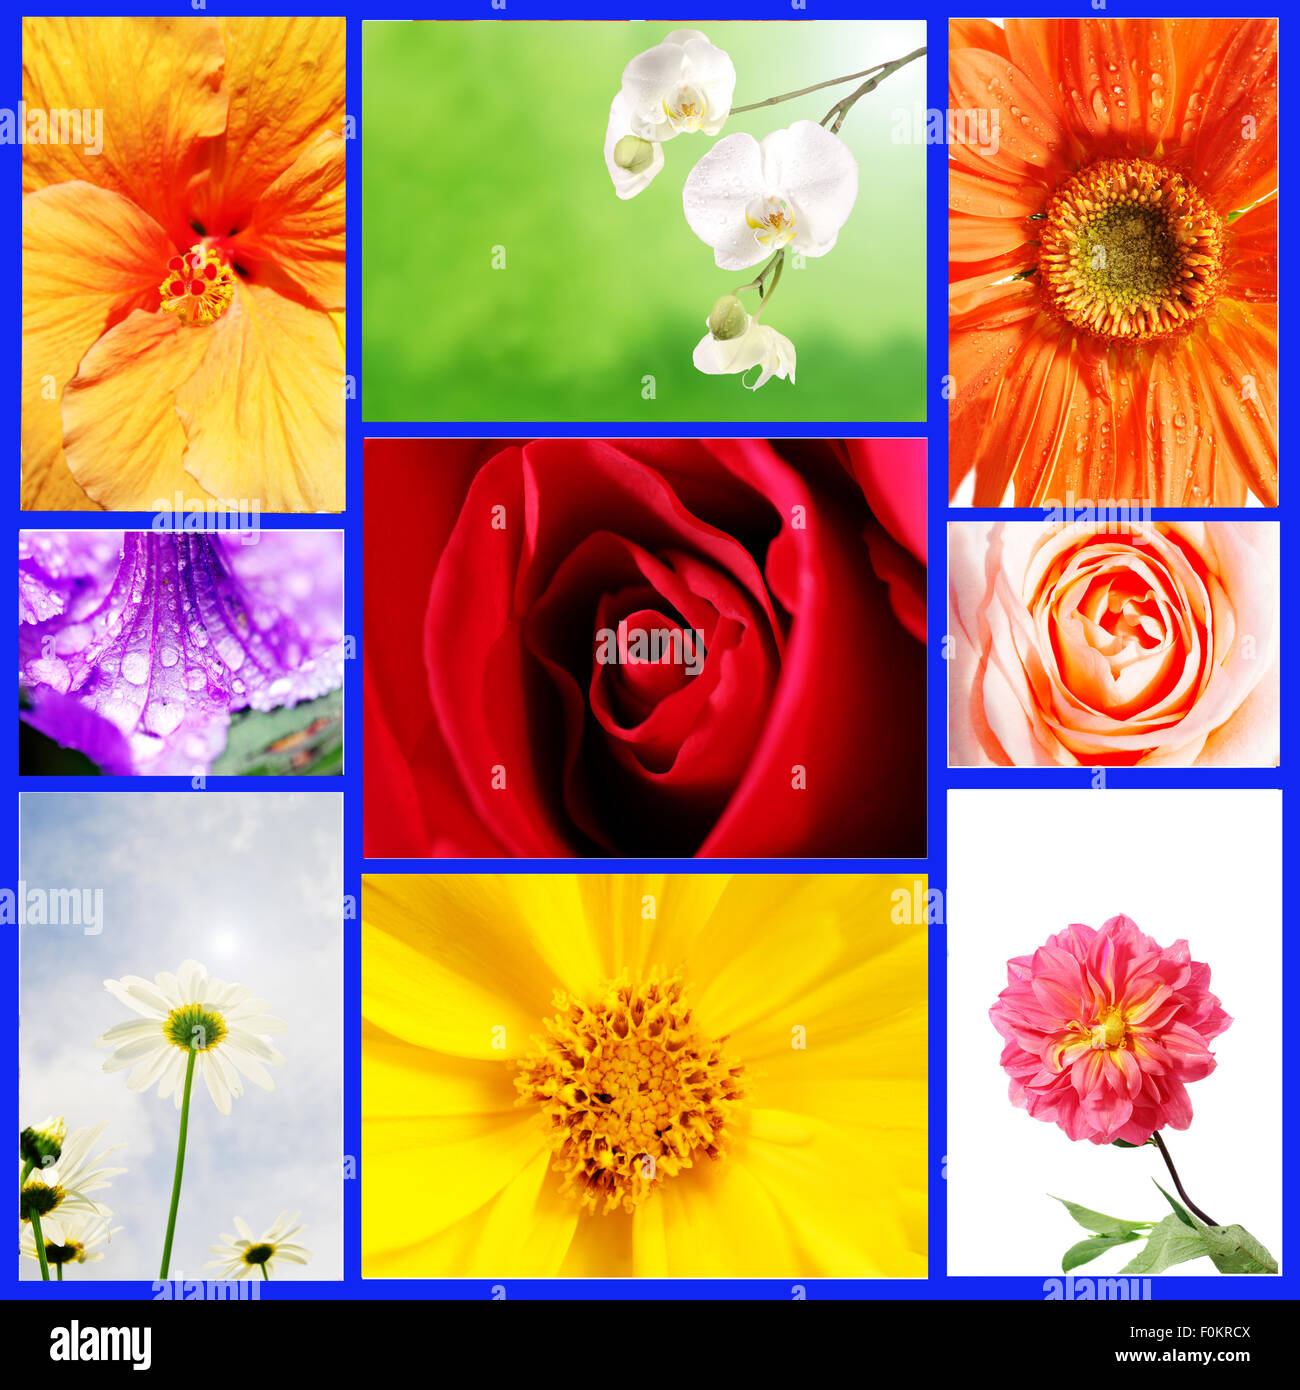 Several types of beautiful flowers in a collage stock photo several types of beautiful flowers in a collage izmirmasajfo